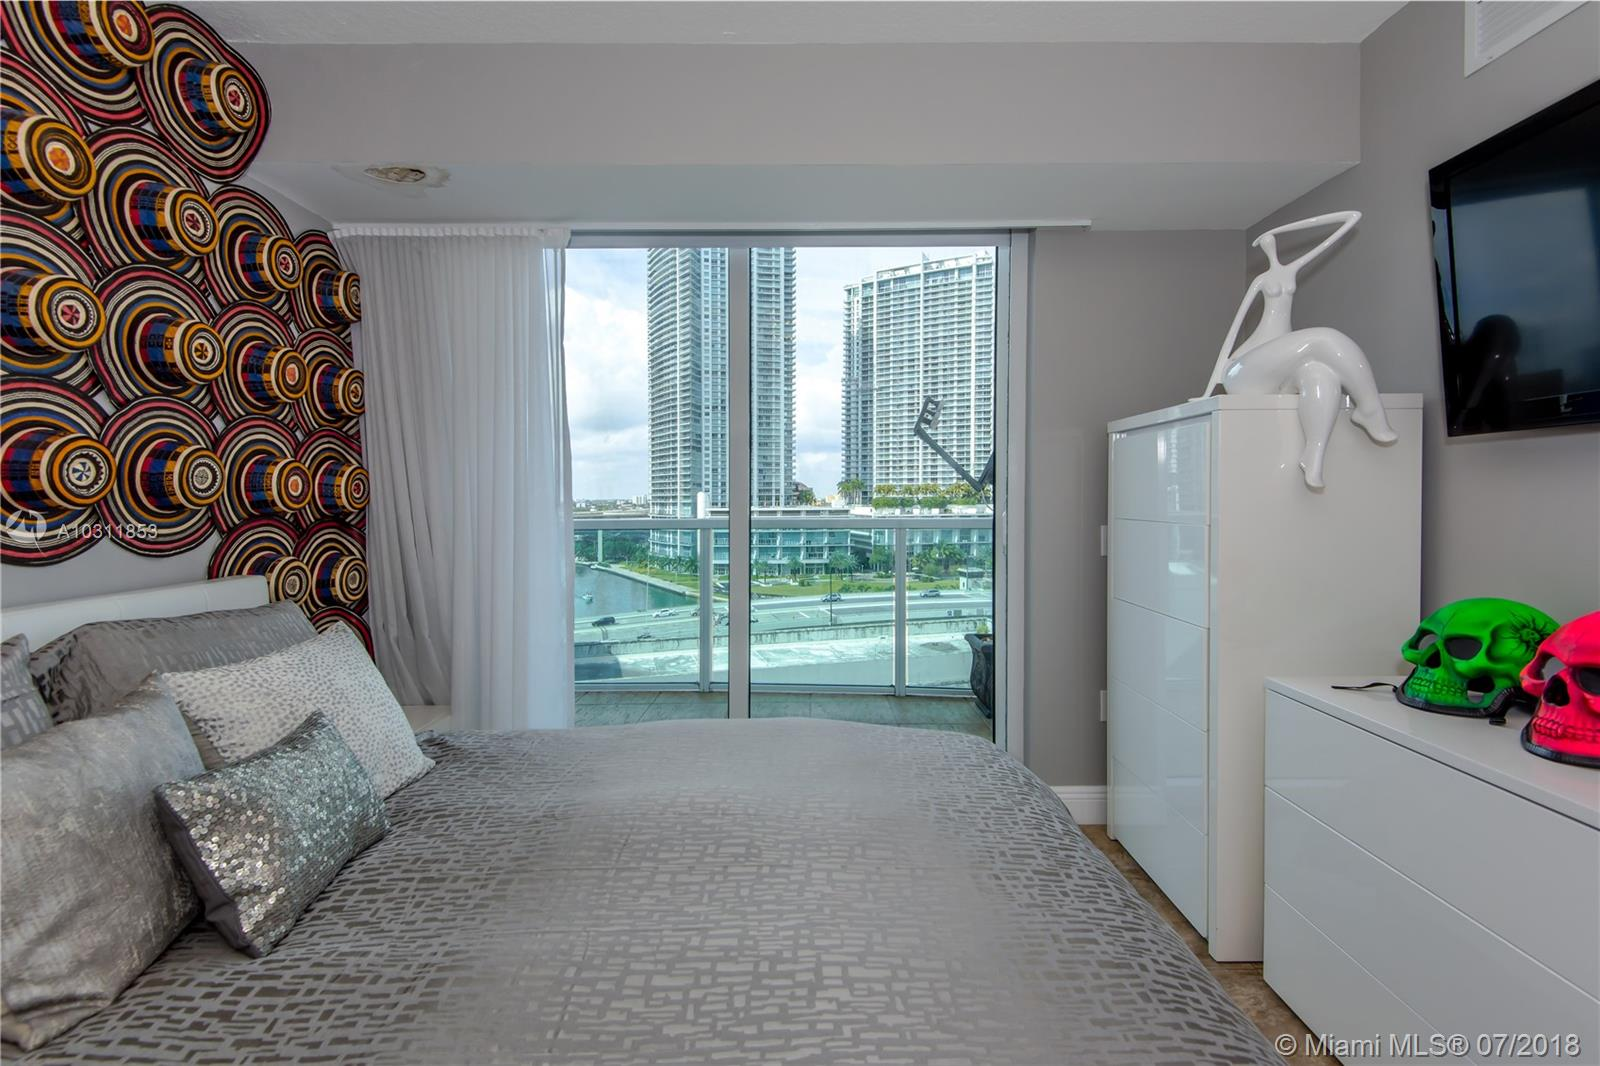 41 SE 5th Street, Miami, FL 33131-2504, Brickell on the River South #717, Brickell, Miami A10311853 image #8